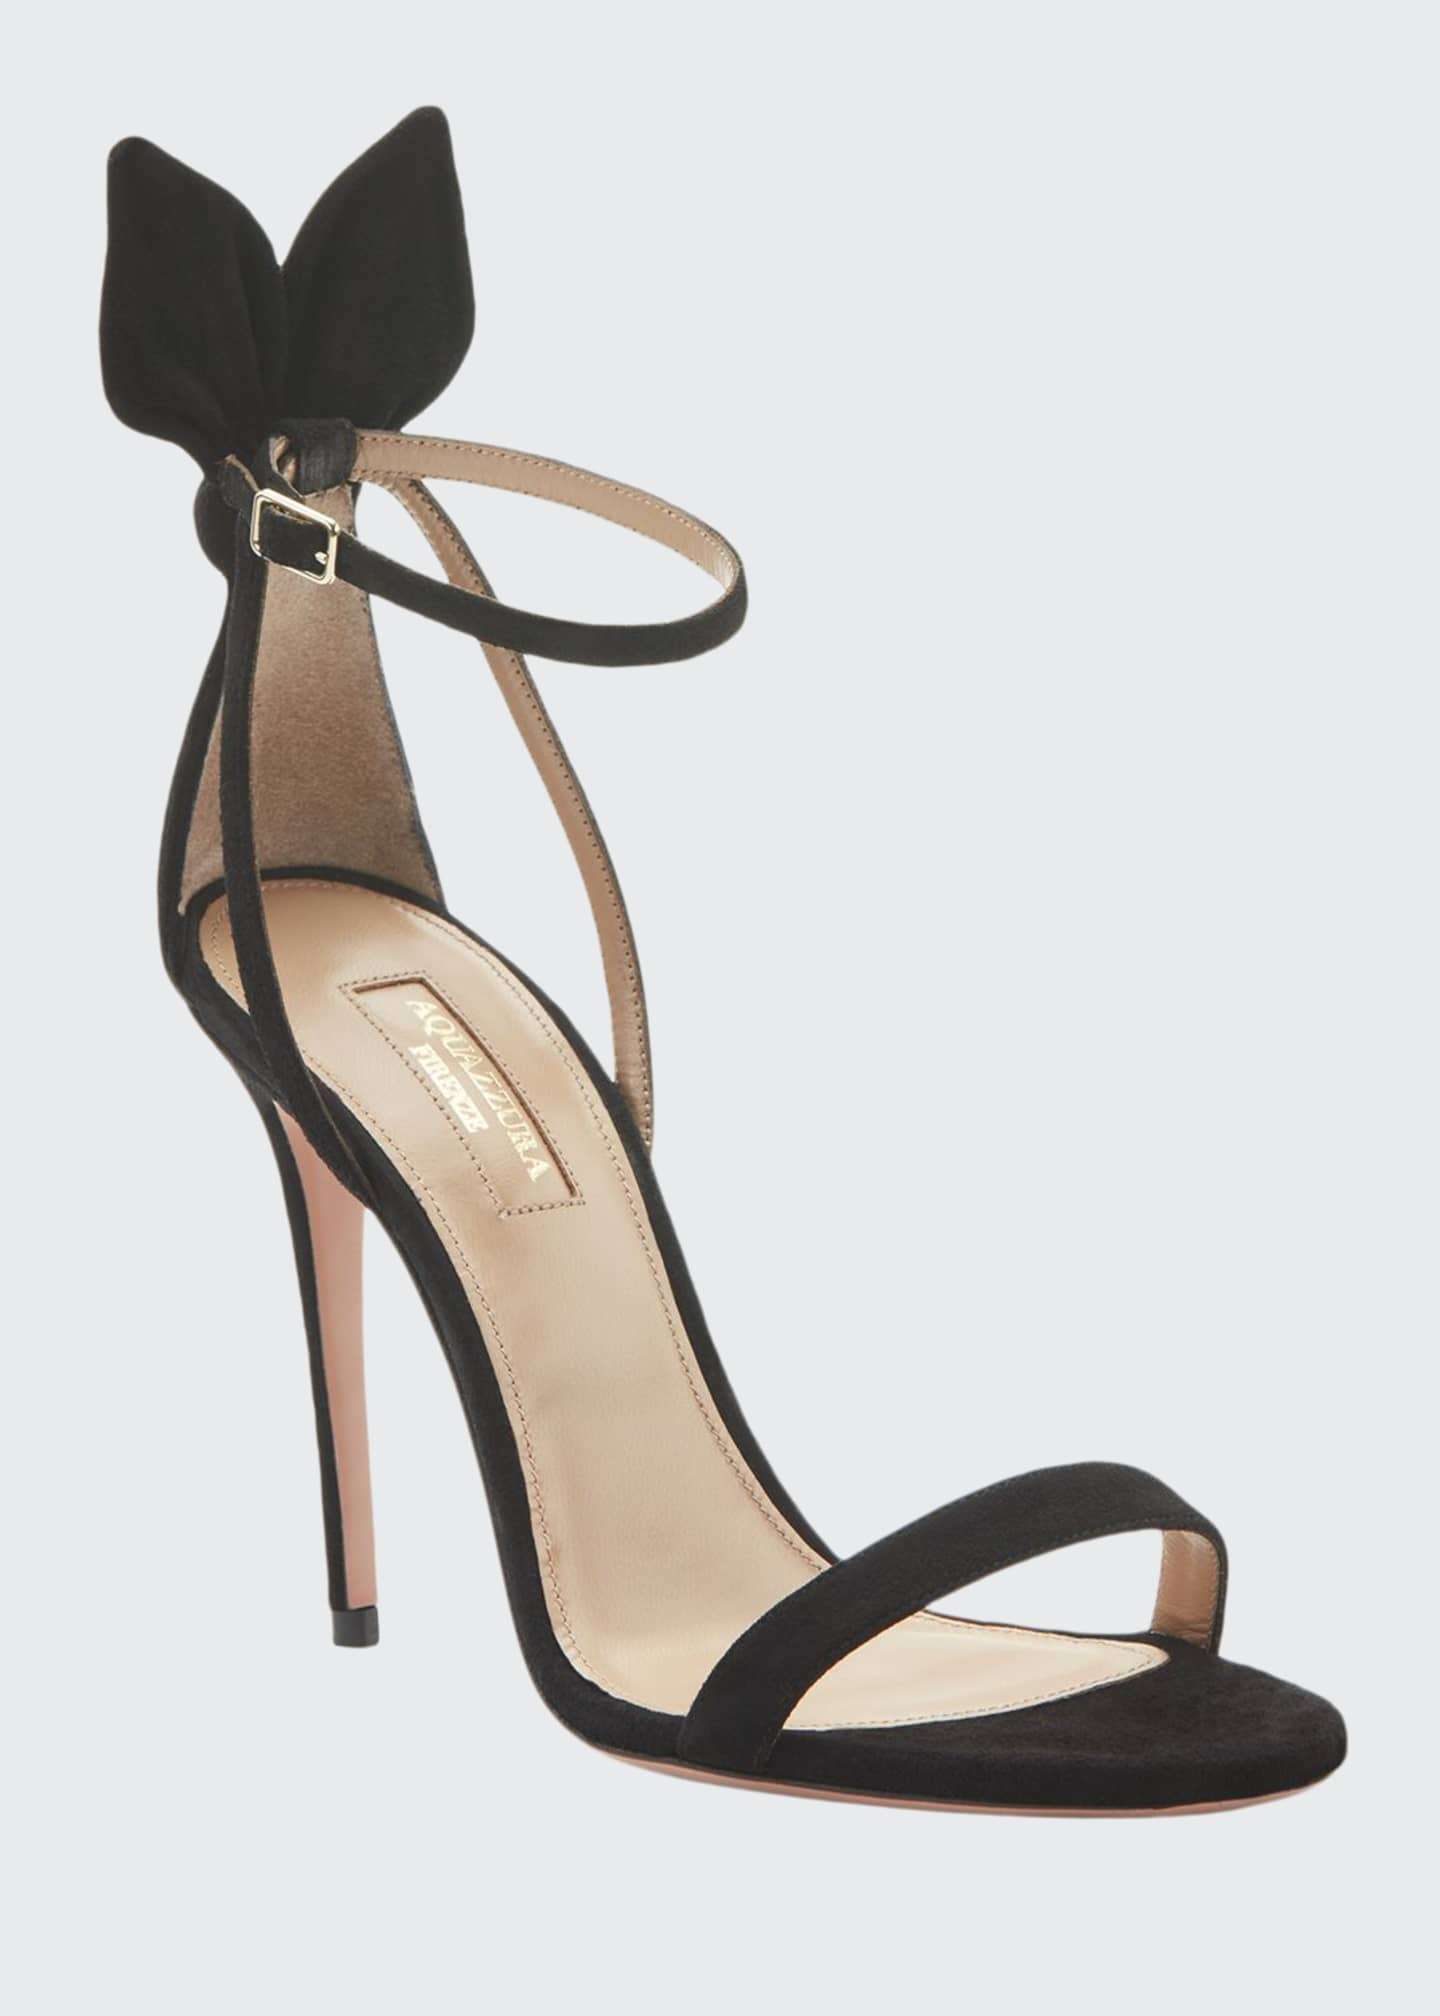 Aquazzura Deneuve Suede Ankle Sandals